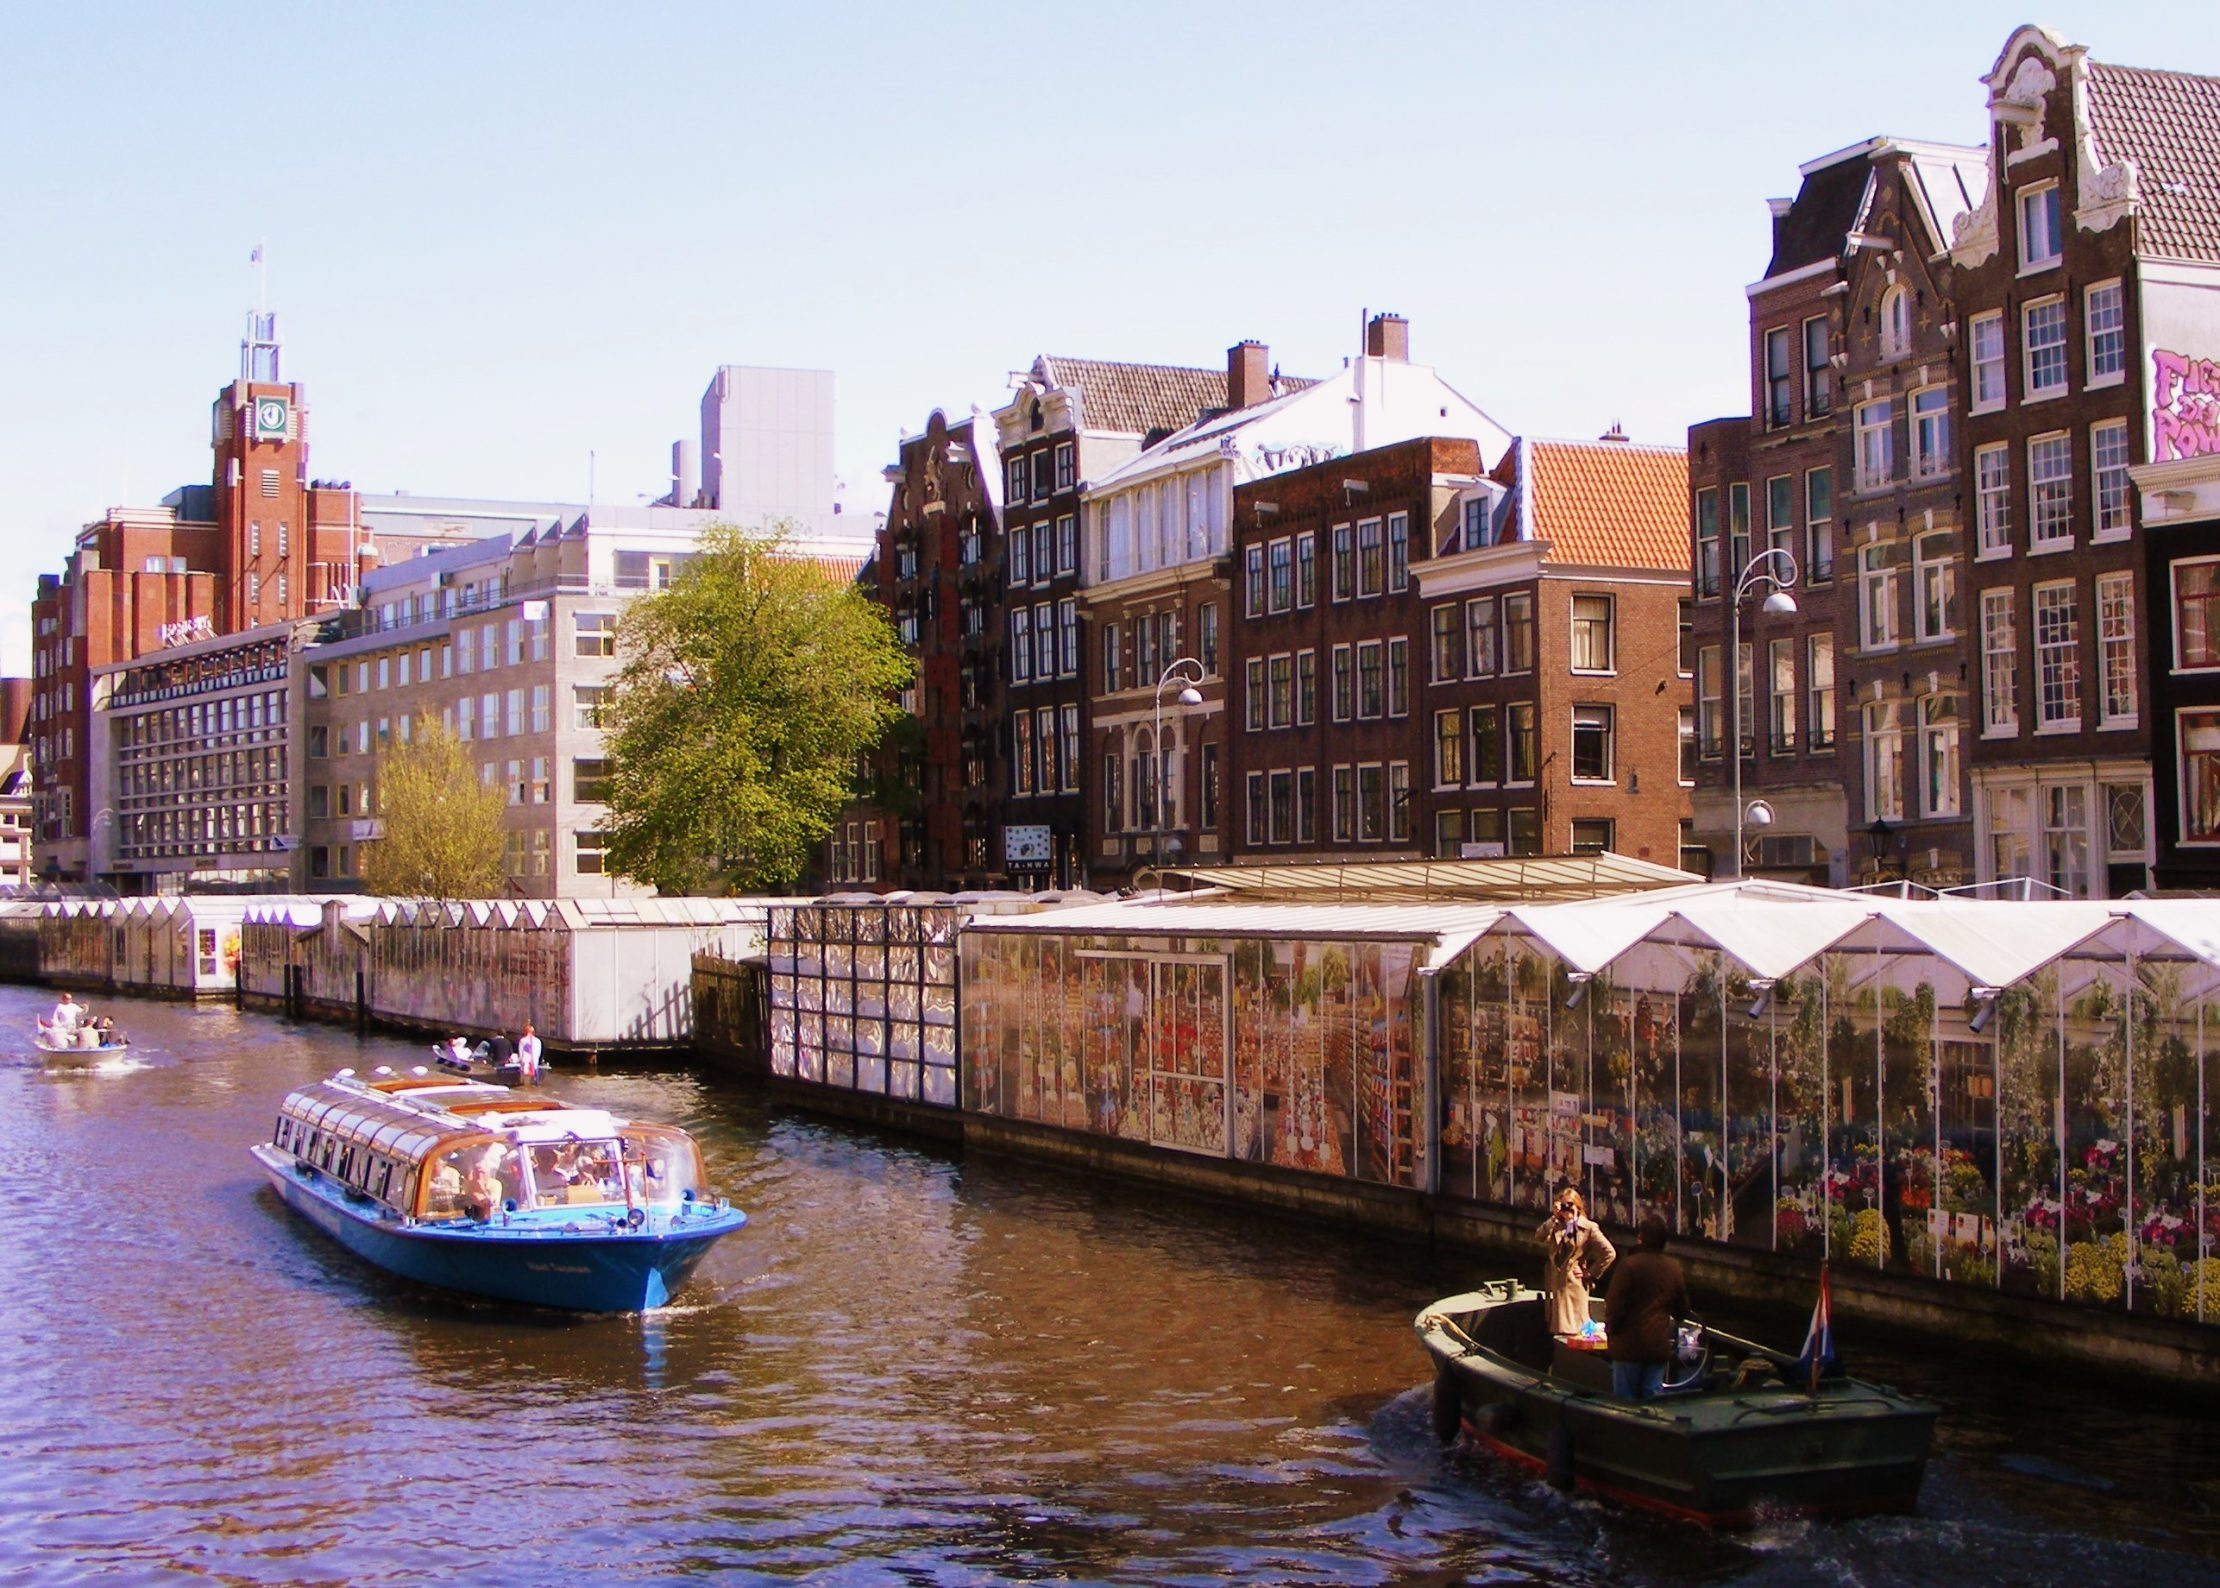 Floating flower market in Amsterdam